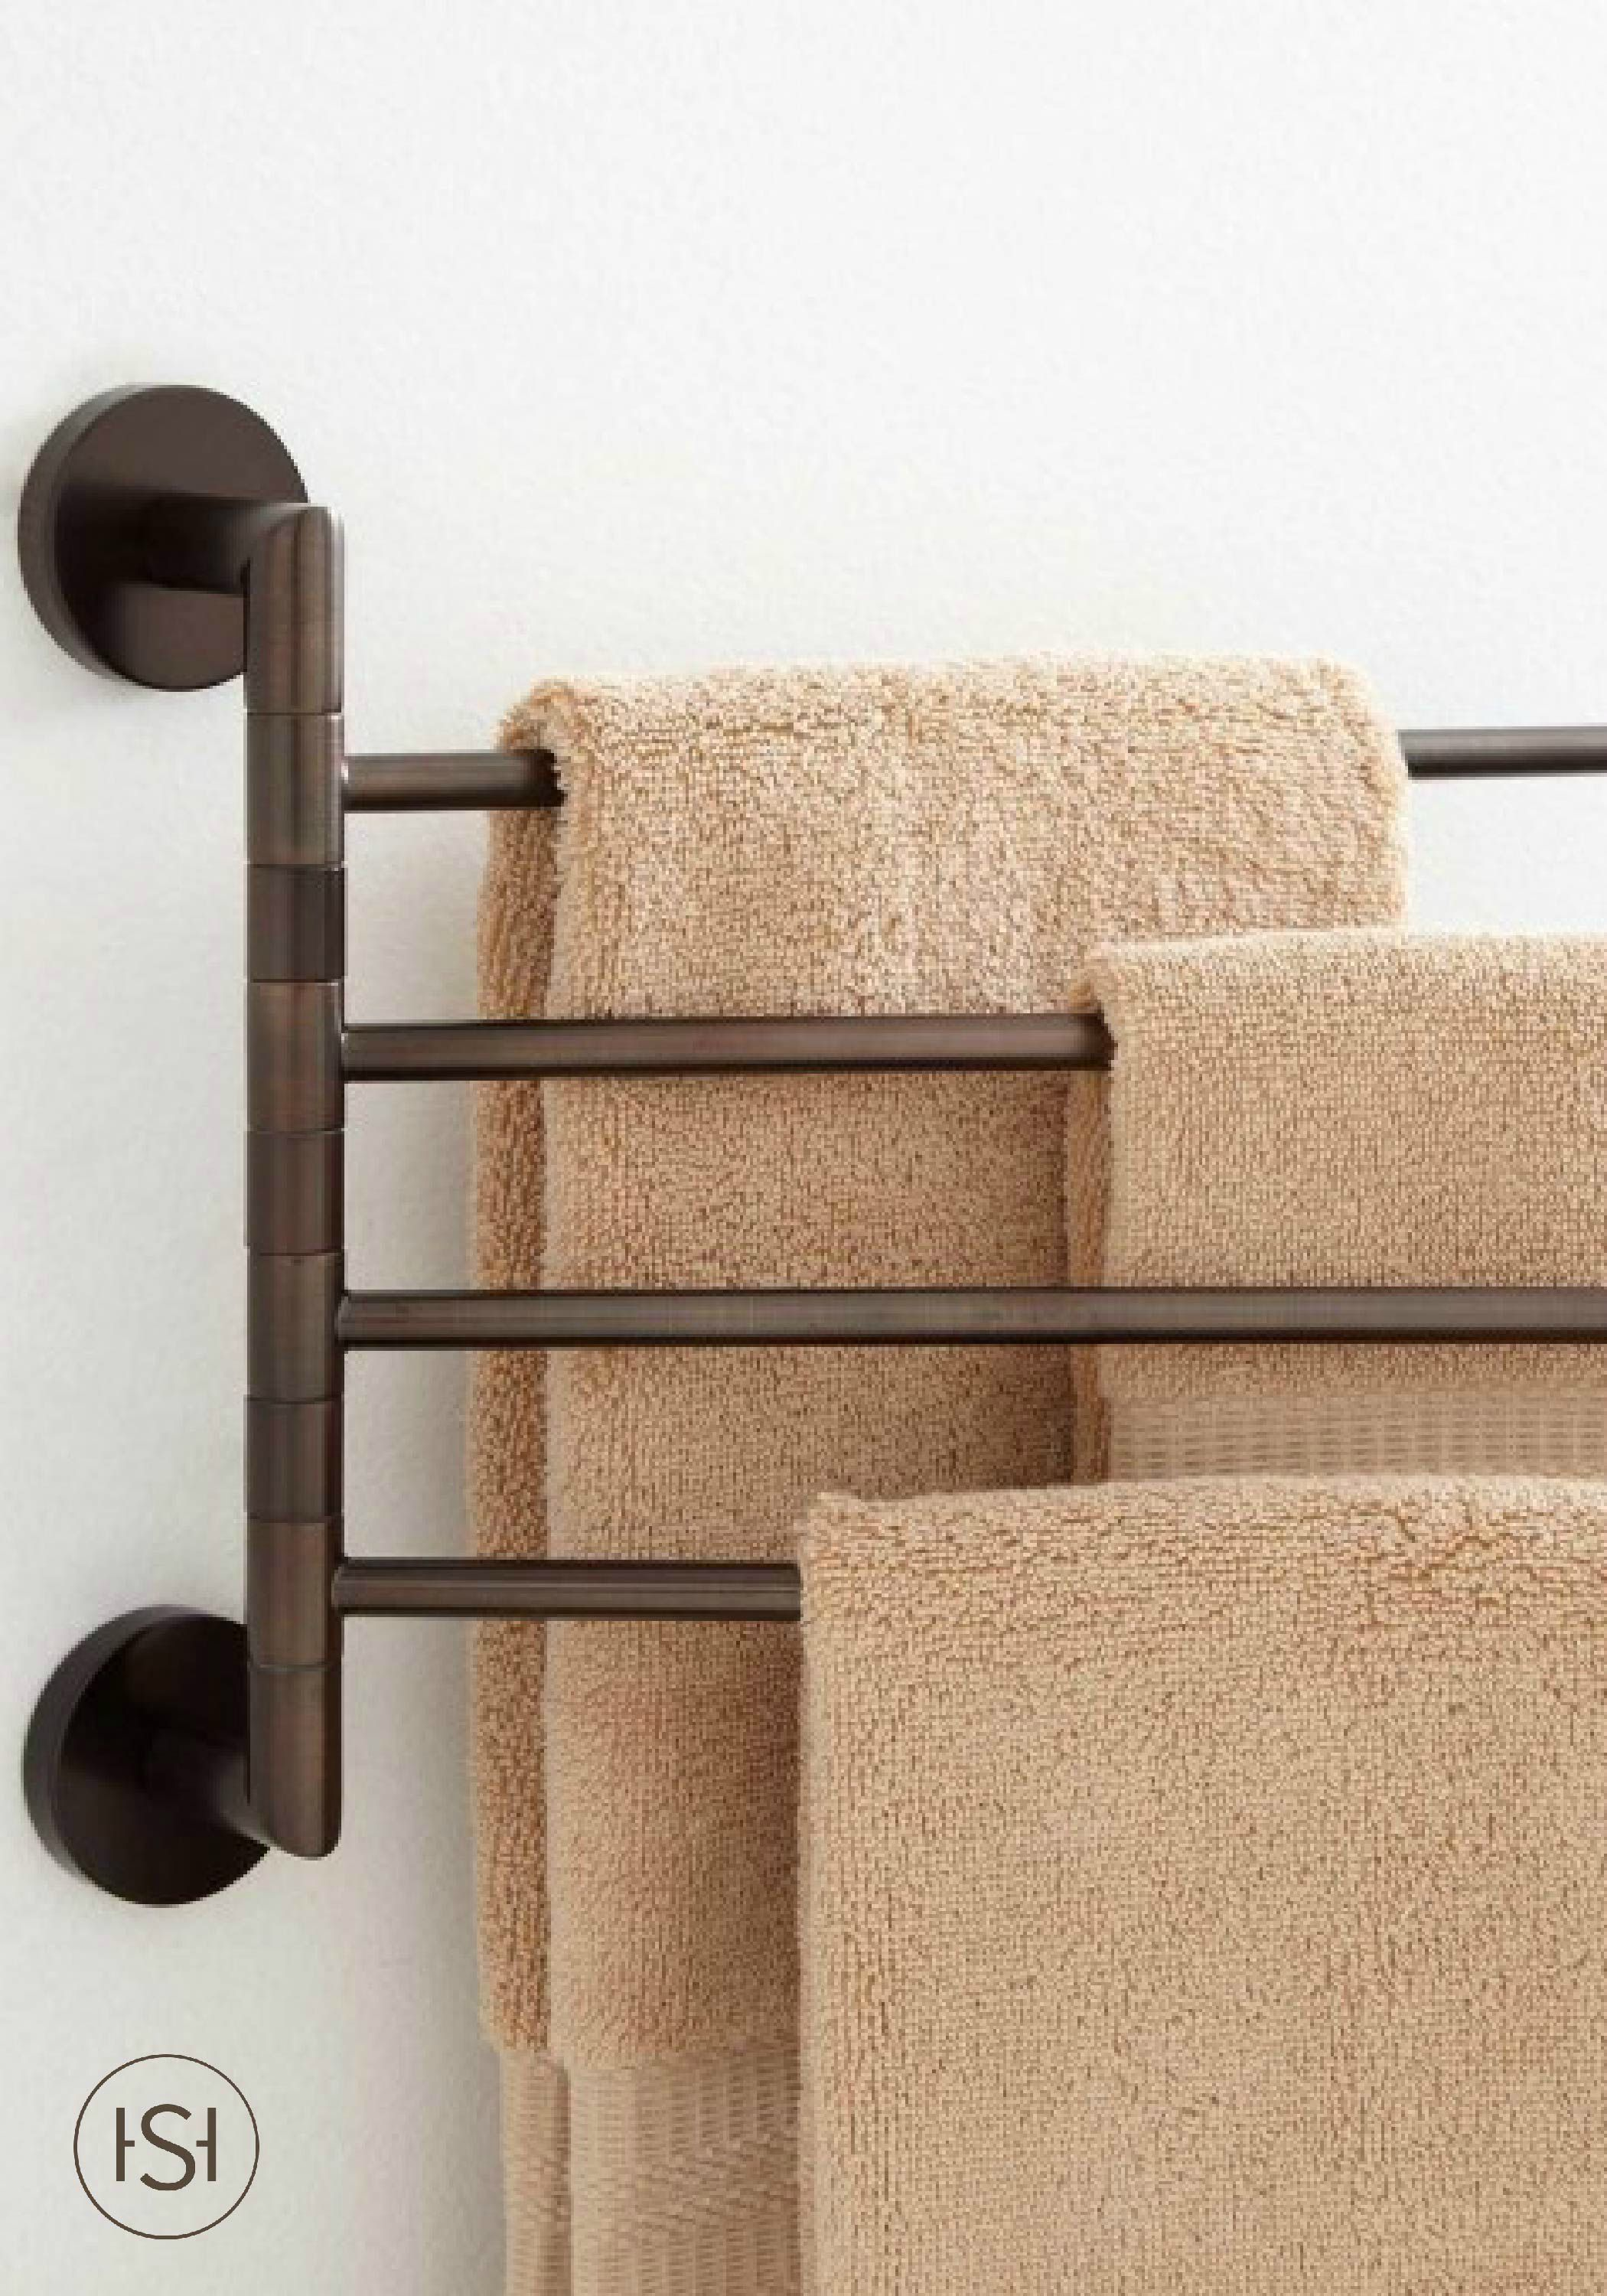 how bathroom rack wikihow towel for with step hang steps racks pictures to